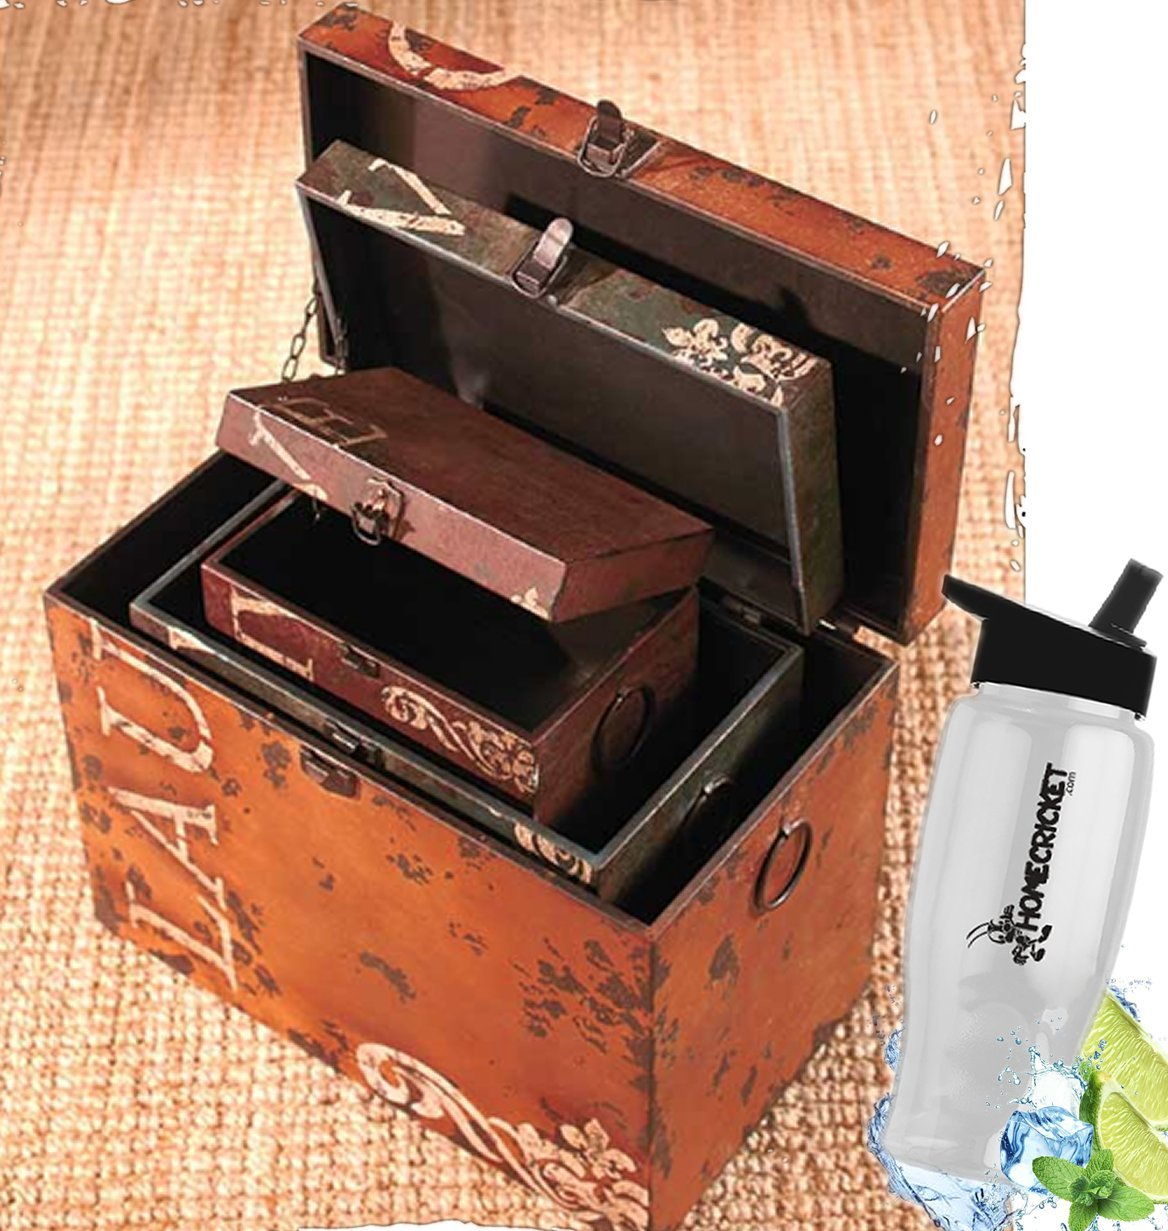 Gift Included- Distressed Vintage Storage Trunks 3 Piece Set Live Love Laugh Rustic Trunk Look & Feel + FREE Bonus Water Bottle by Homecricket